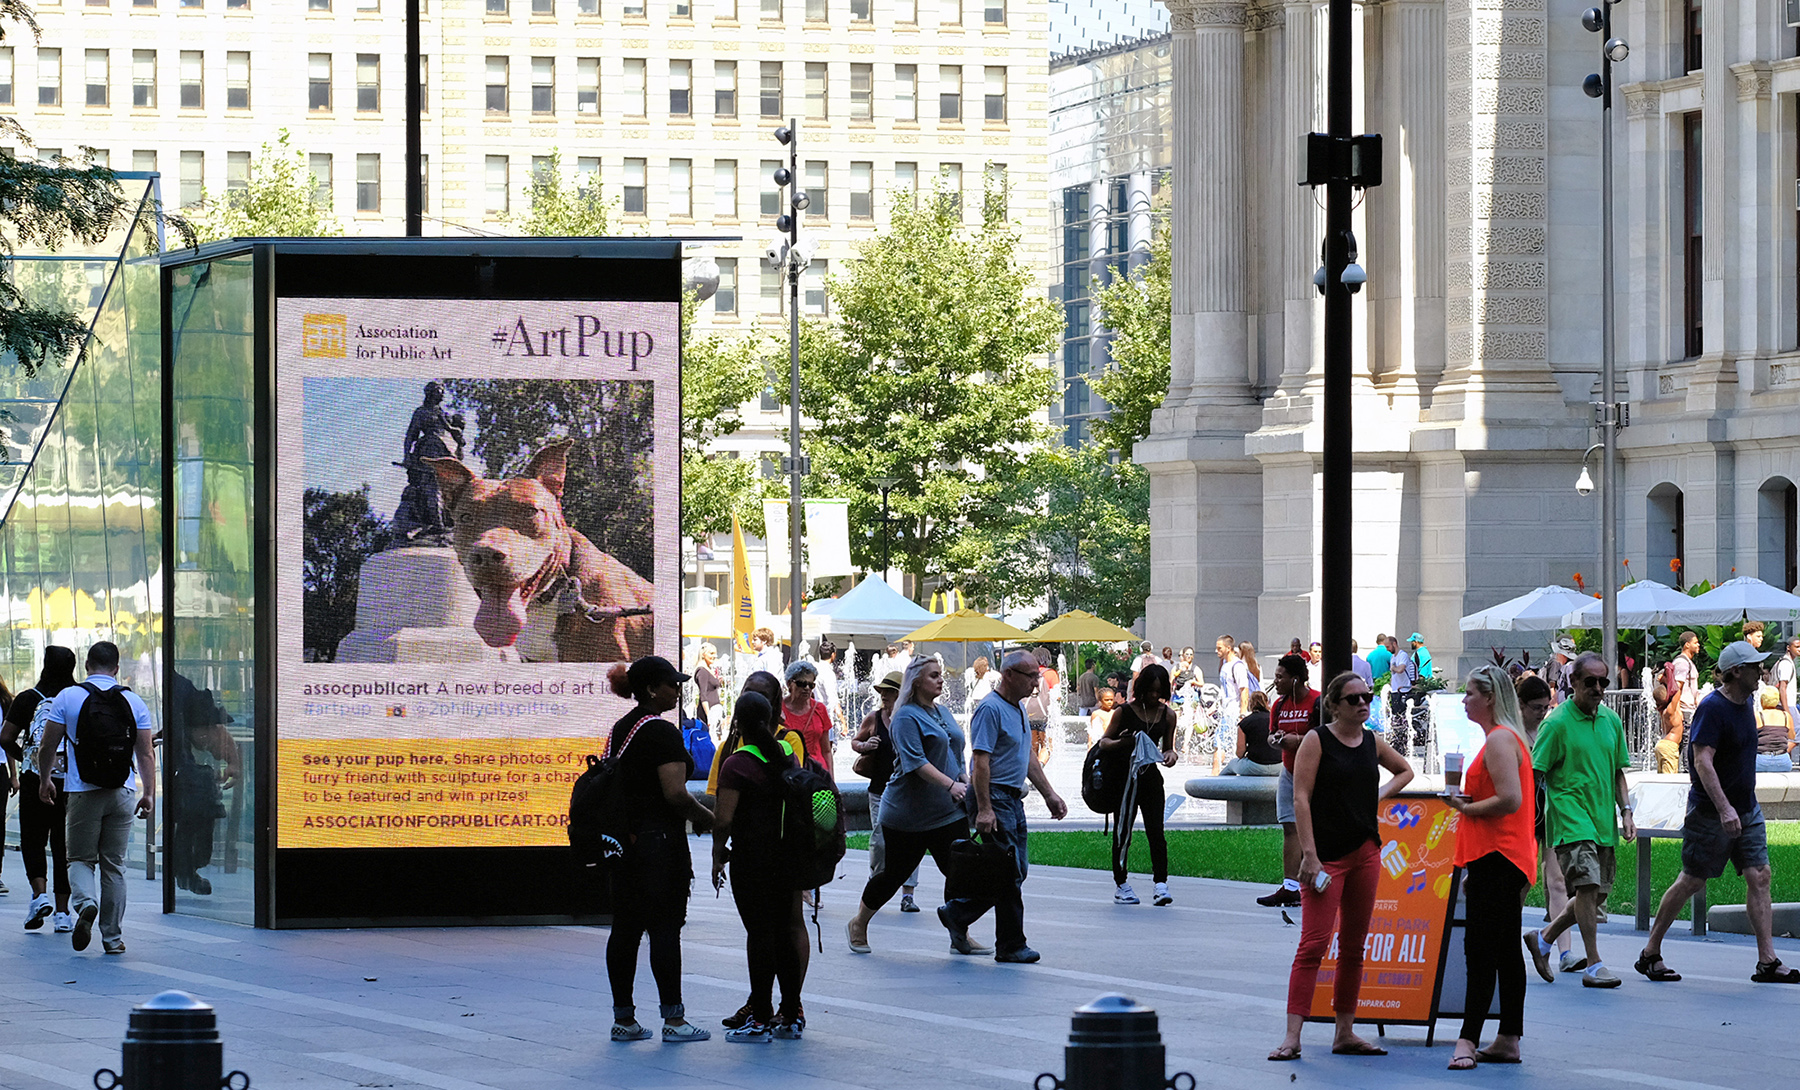 ArtPup screen in Dilworth Park